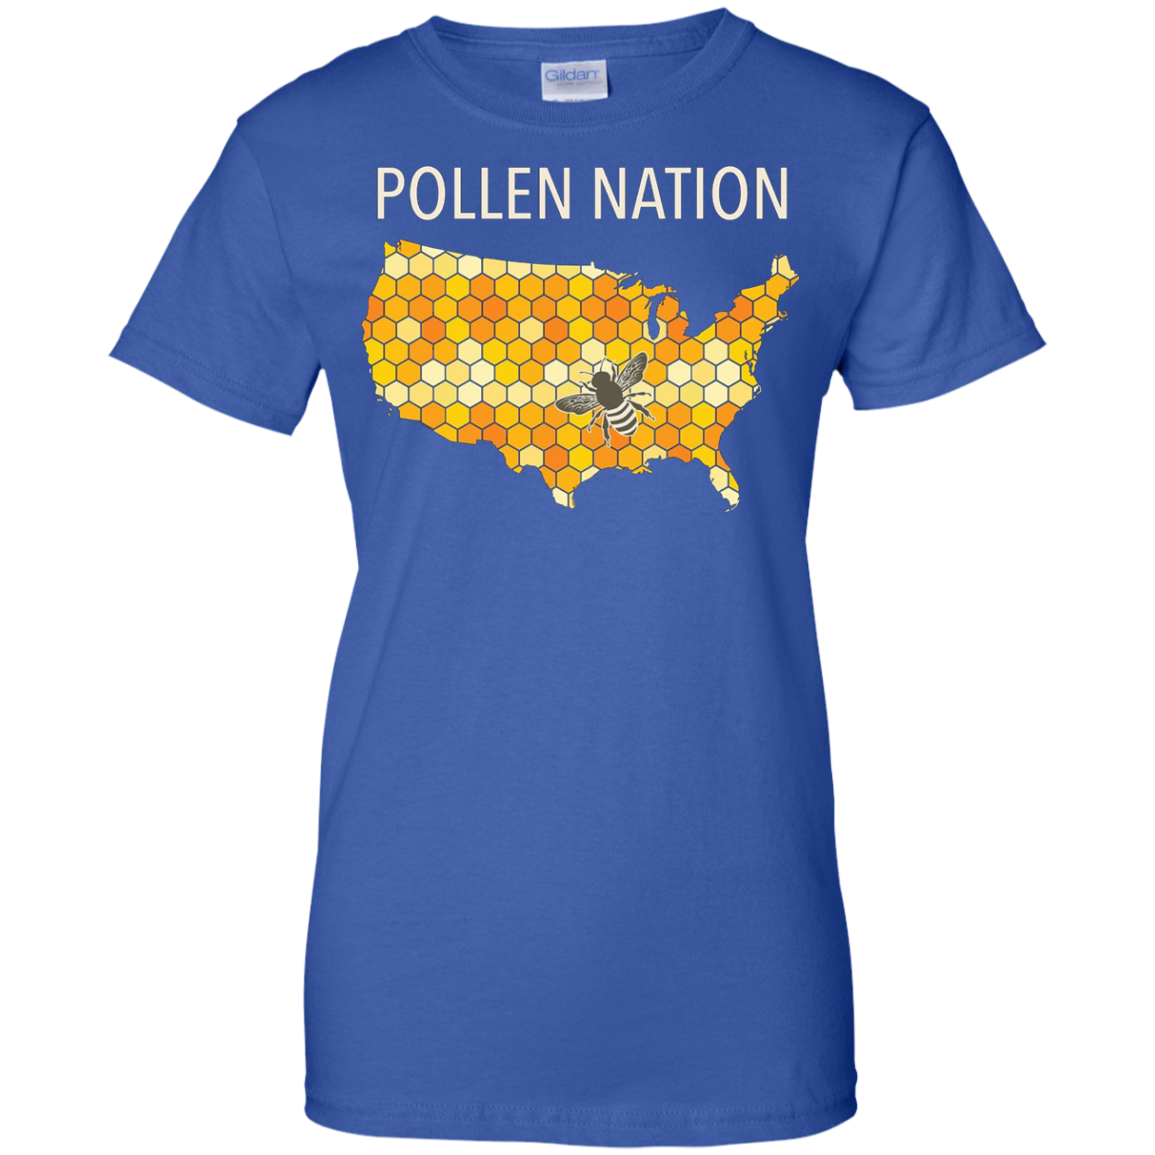 Pollen Nation Shirt for Beekeepers and Lovers of Honey Bees